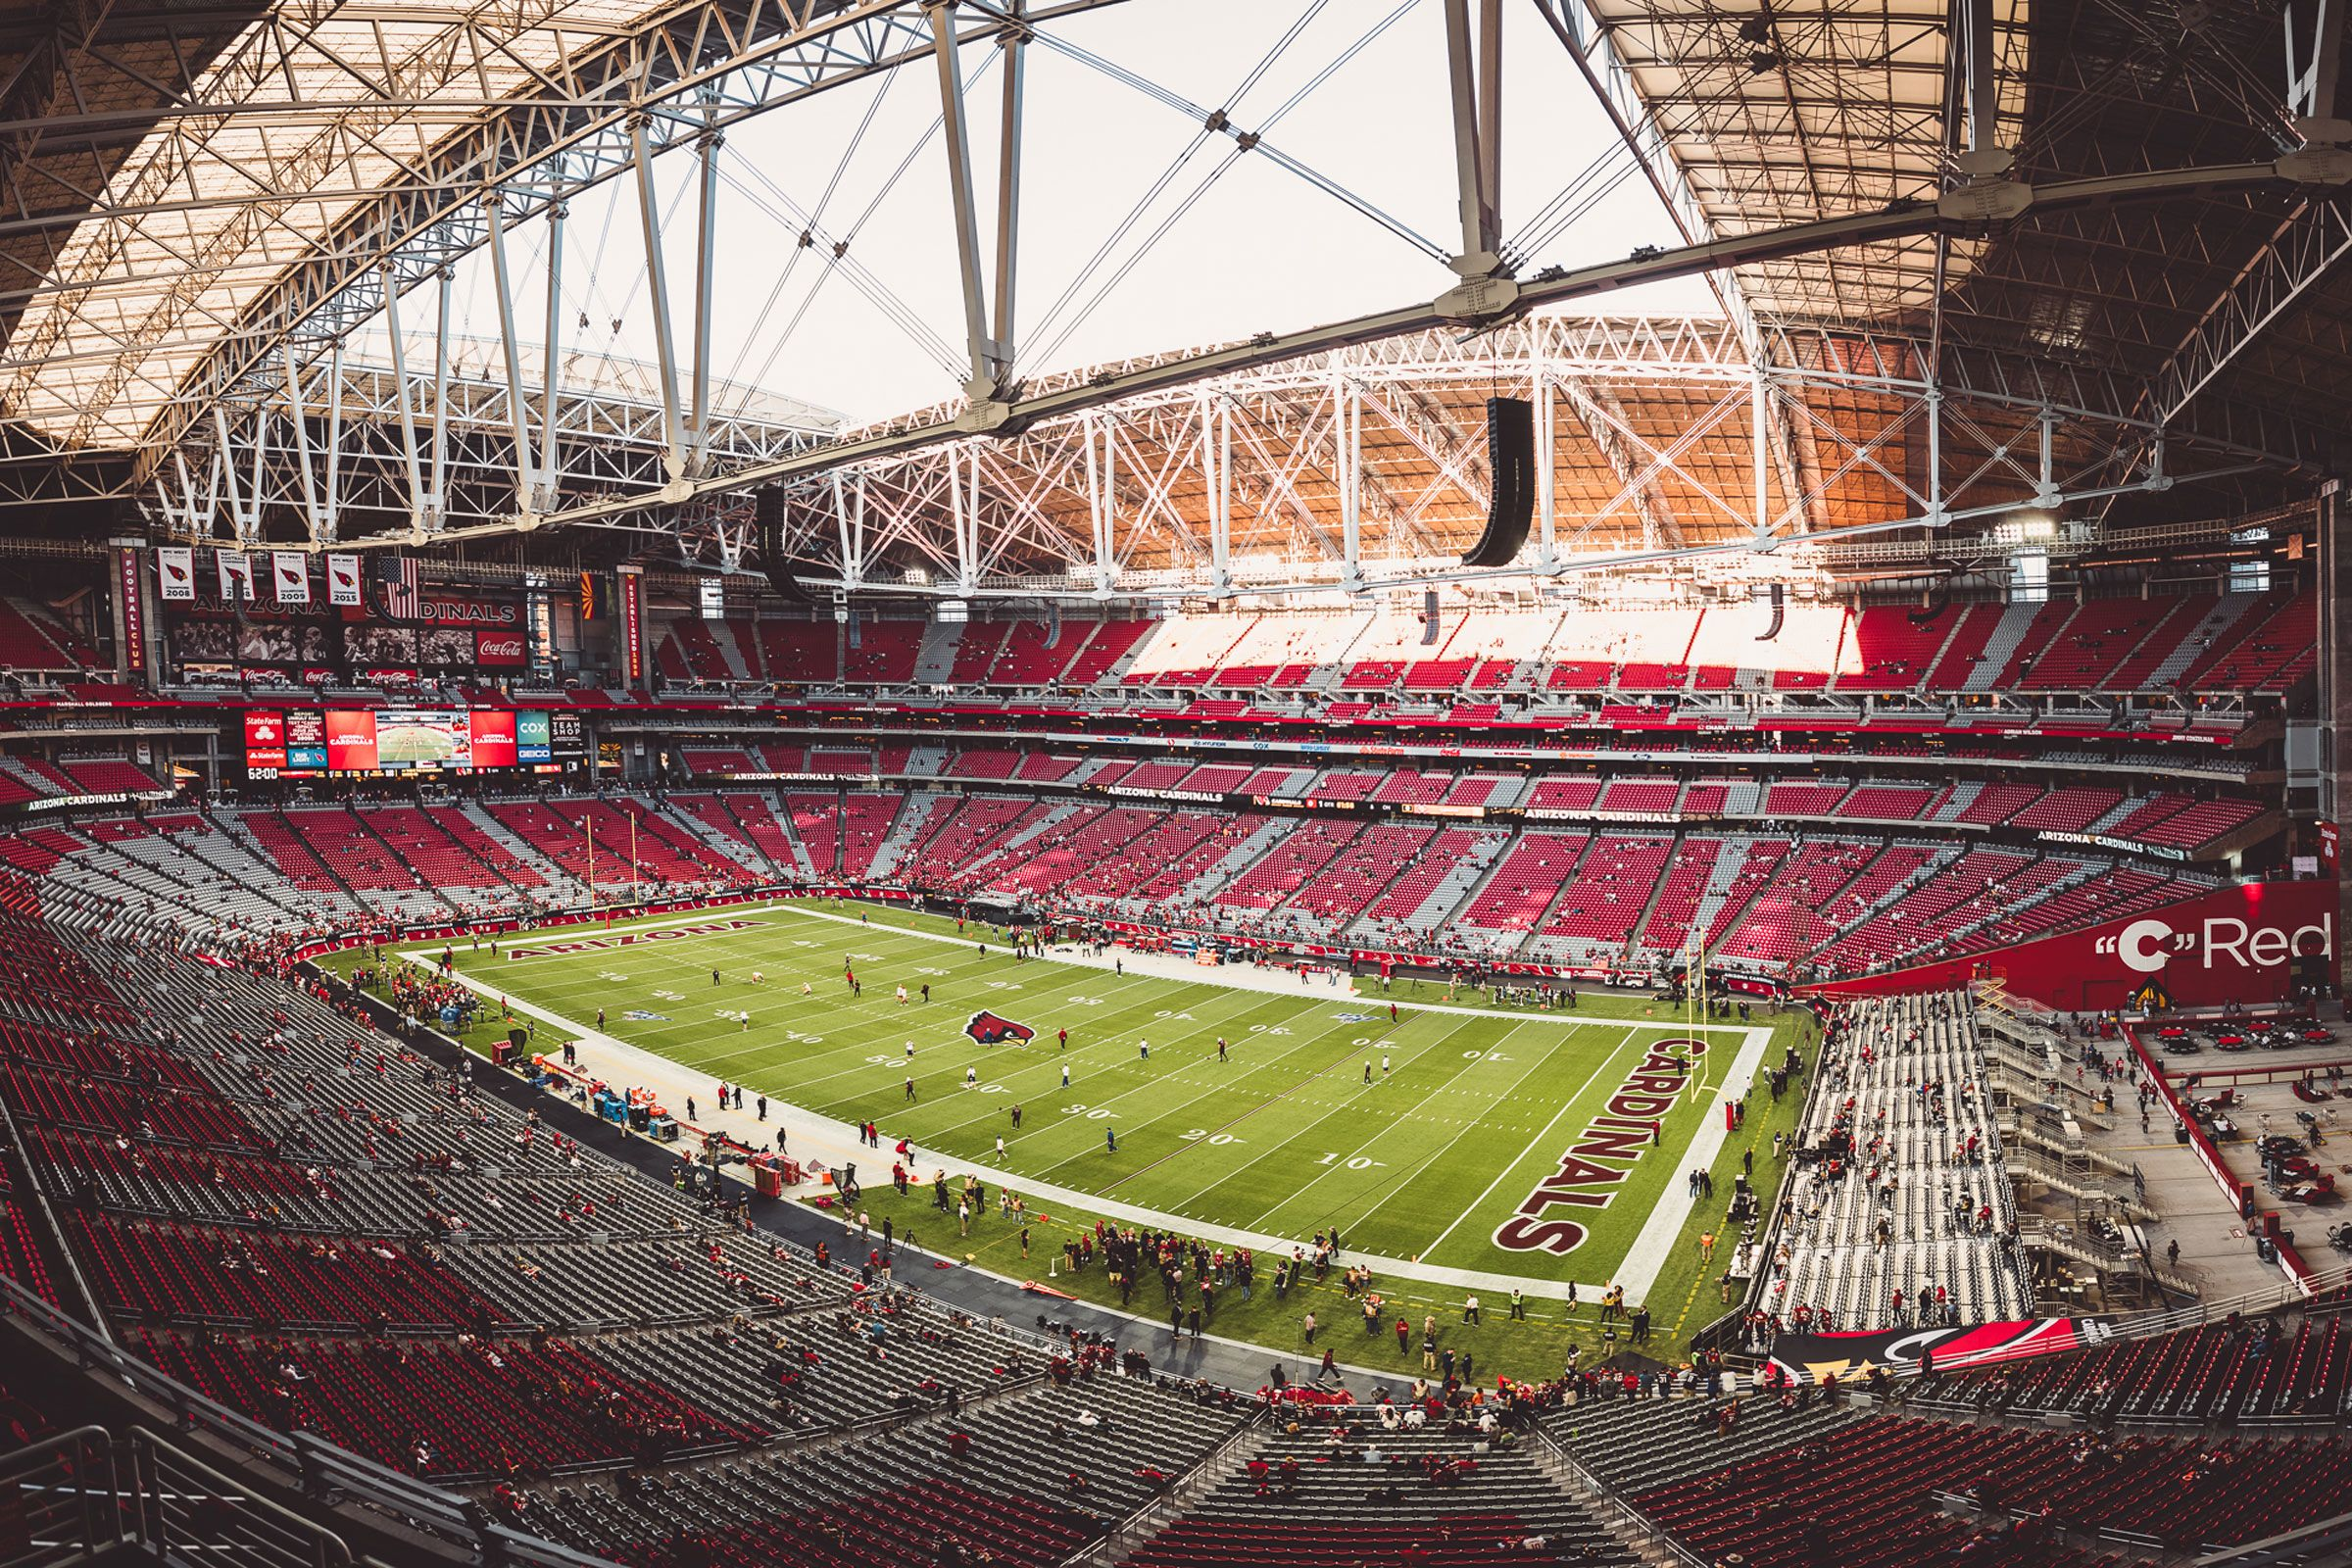 arizona cardinals home the official source of the latest cardinals headlines news videos photos tickets rosters and game day information arizona cardinals home the official